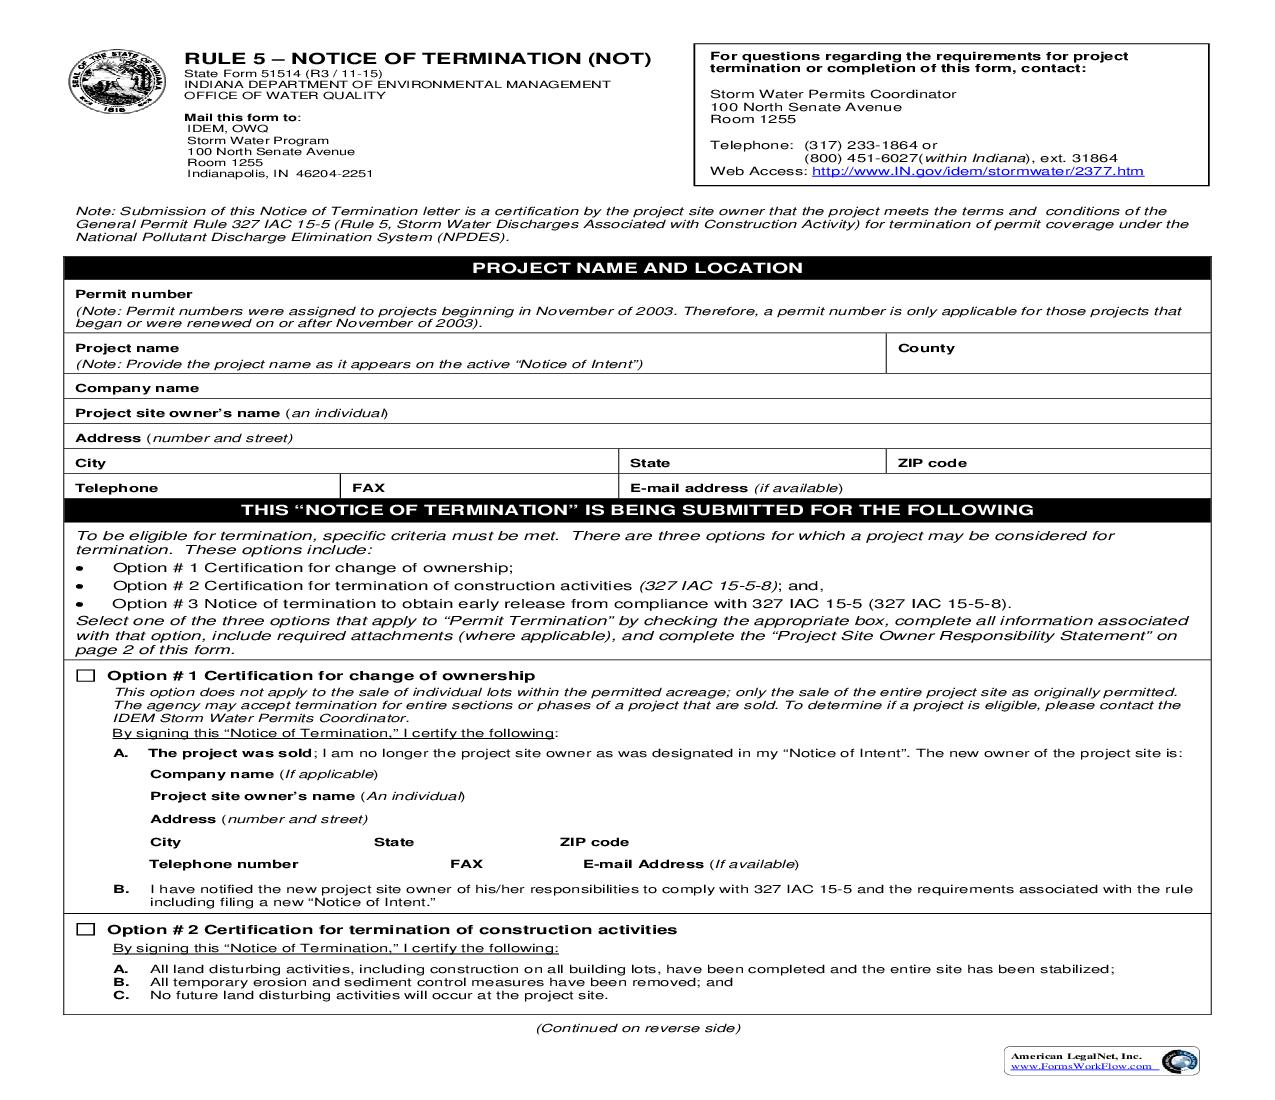 Rule 5 Notice Of Termination (NOT) {51514}      Indiana